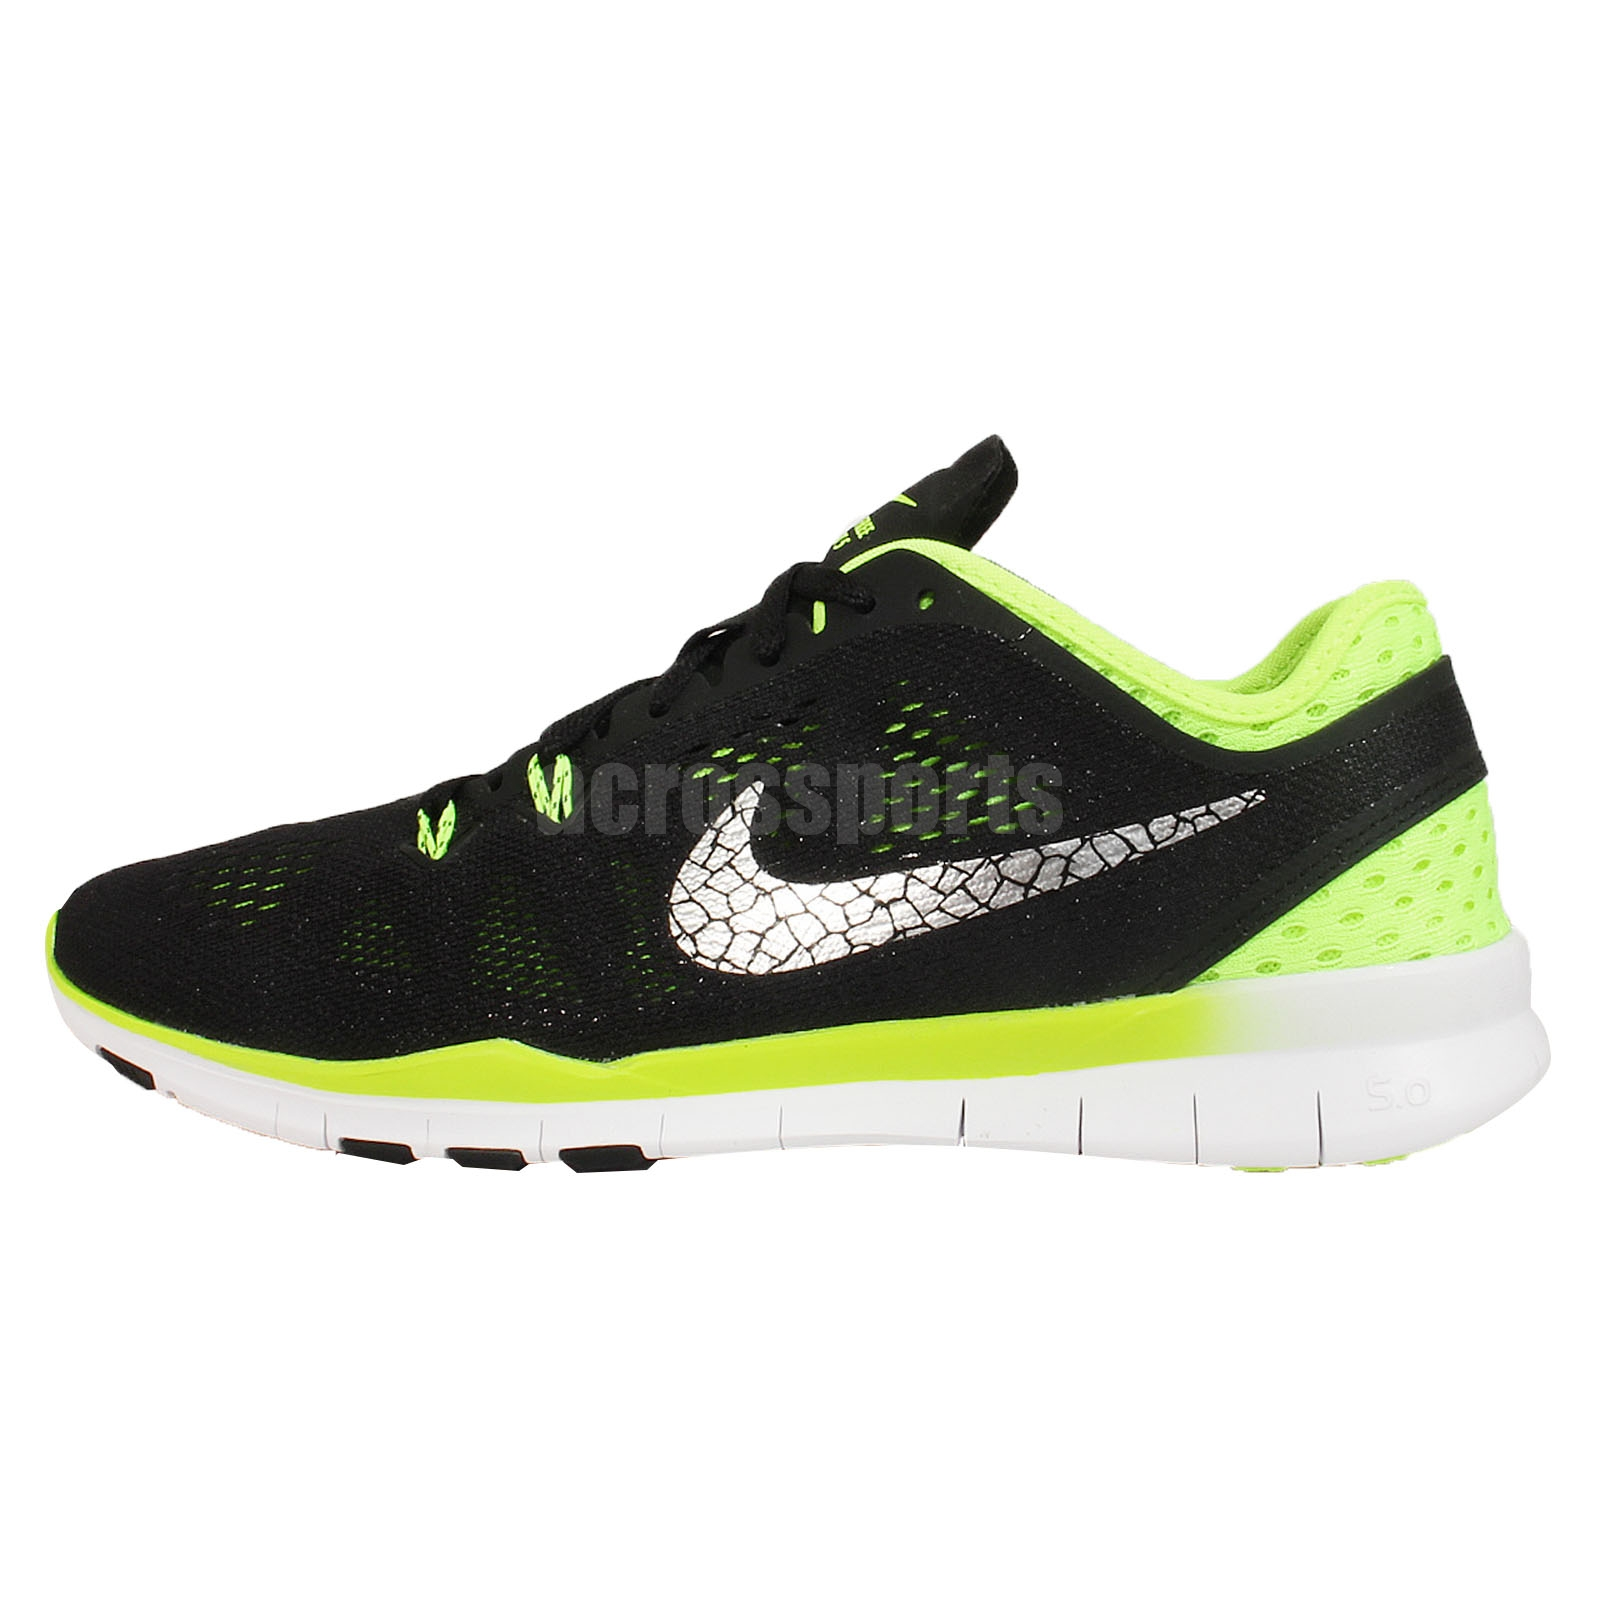 Amazing The Swoosh Unveiled Today The Metcon 4, Its Latest CrossFitready And Functional Fitnessfocused Shoe  With A Launch On Nikecom To Follow On Jan 1 And Then